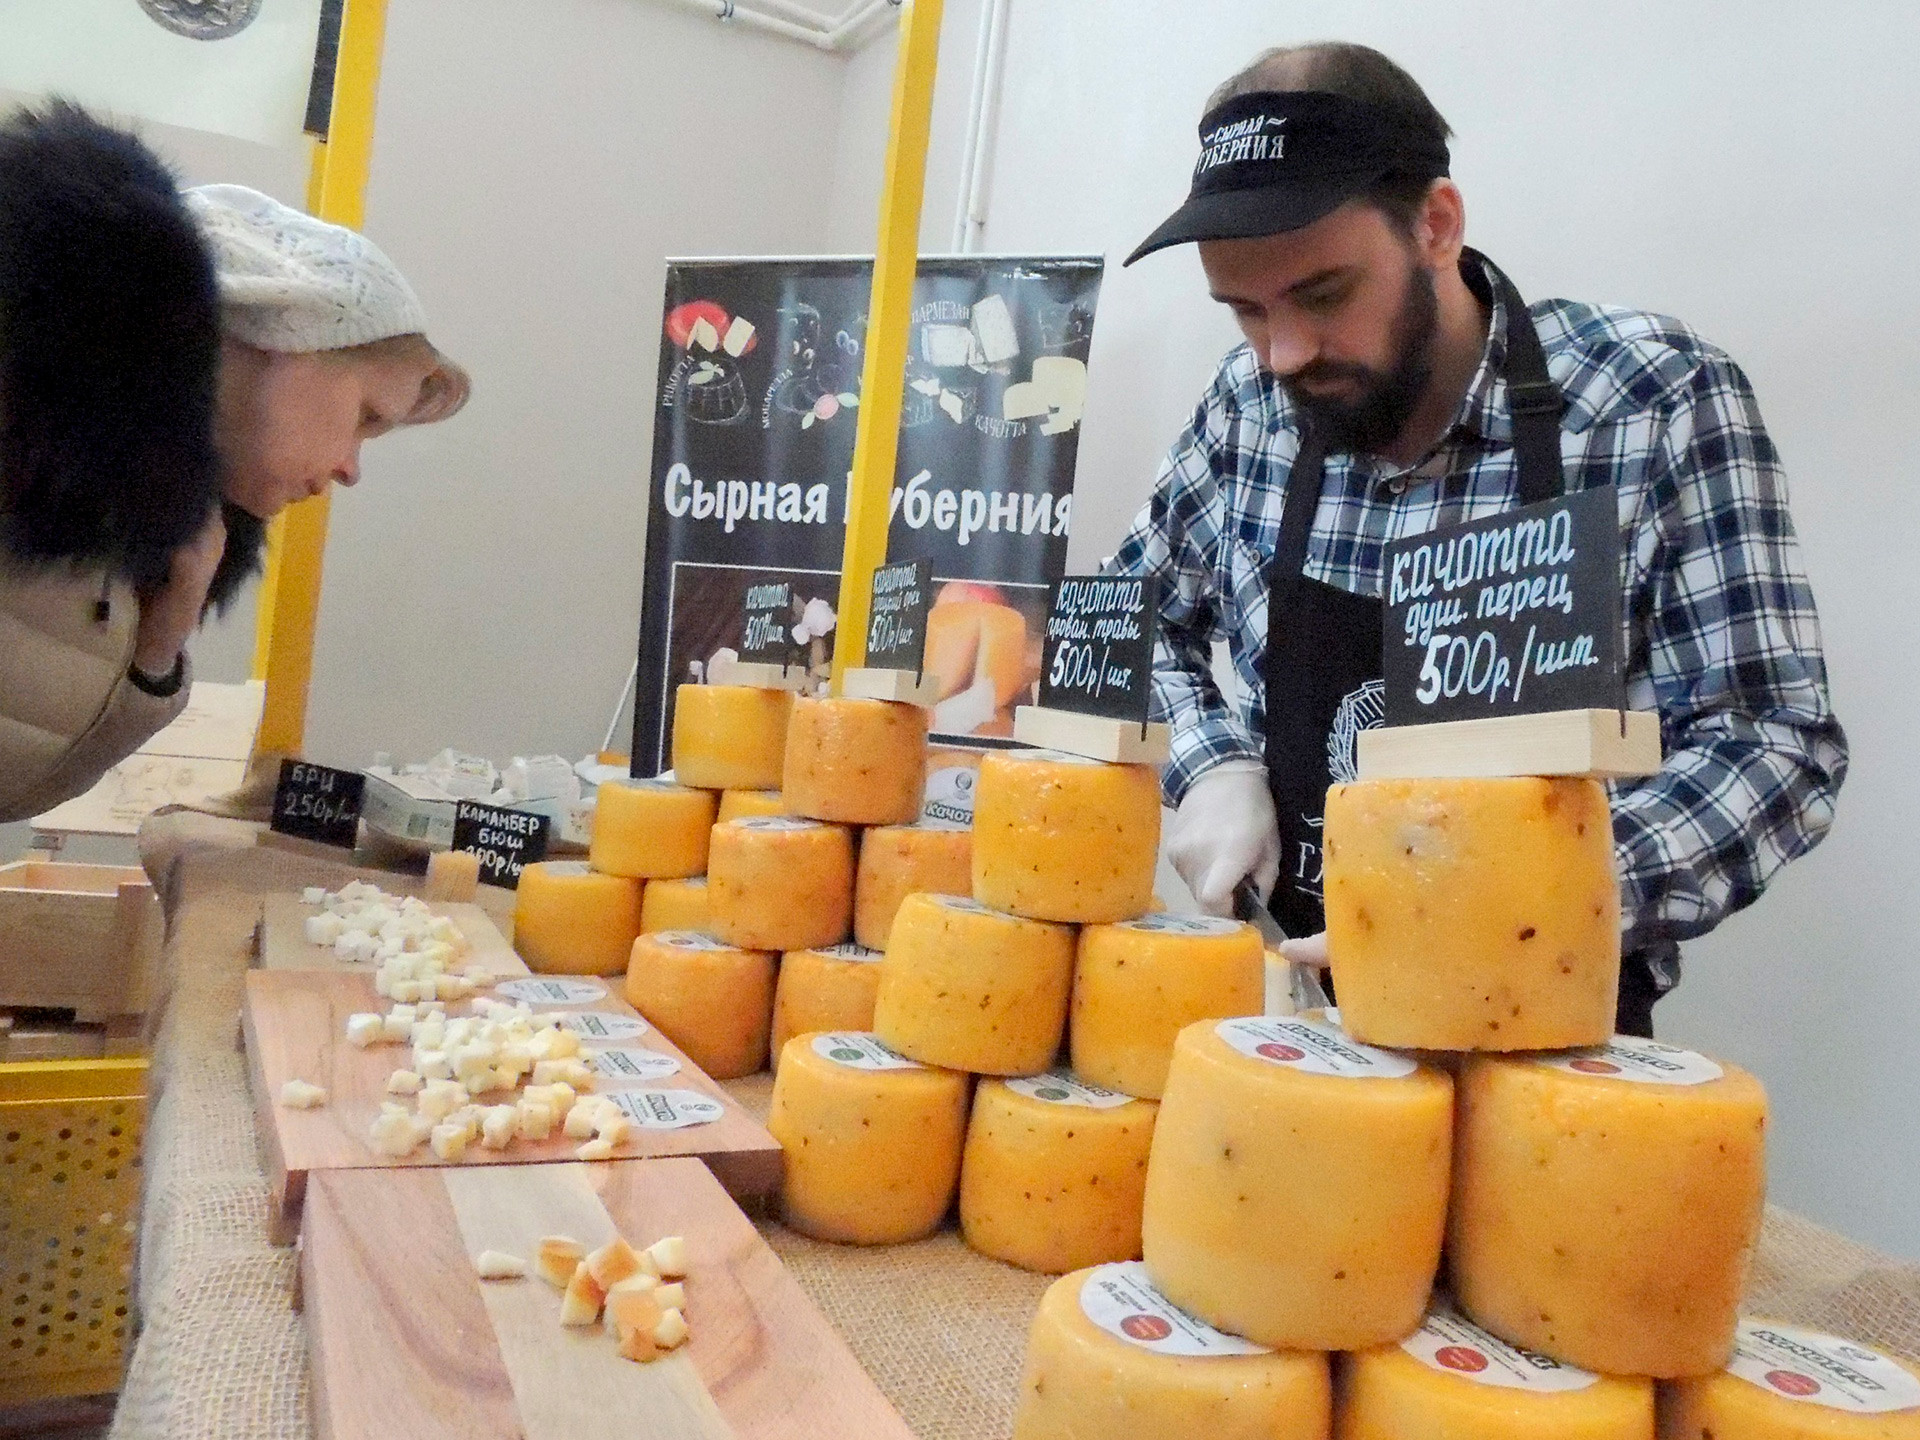 The festival of cheese in Moscow